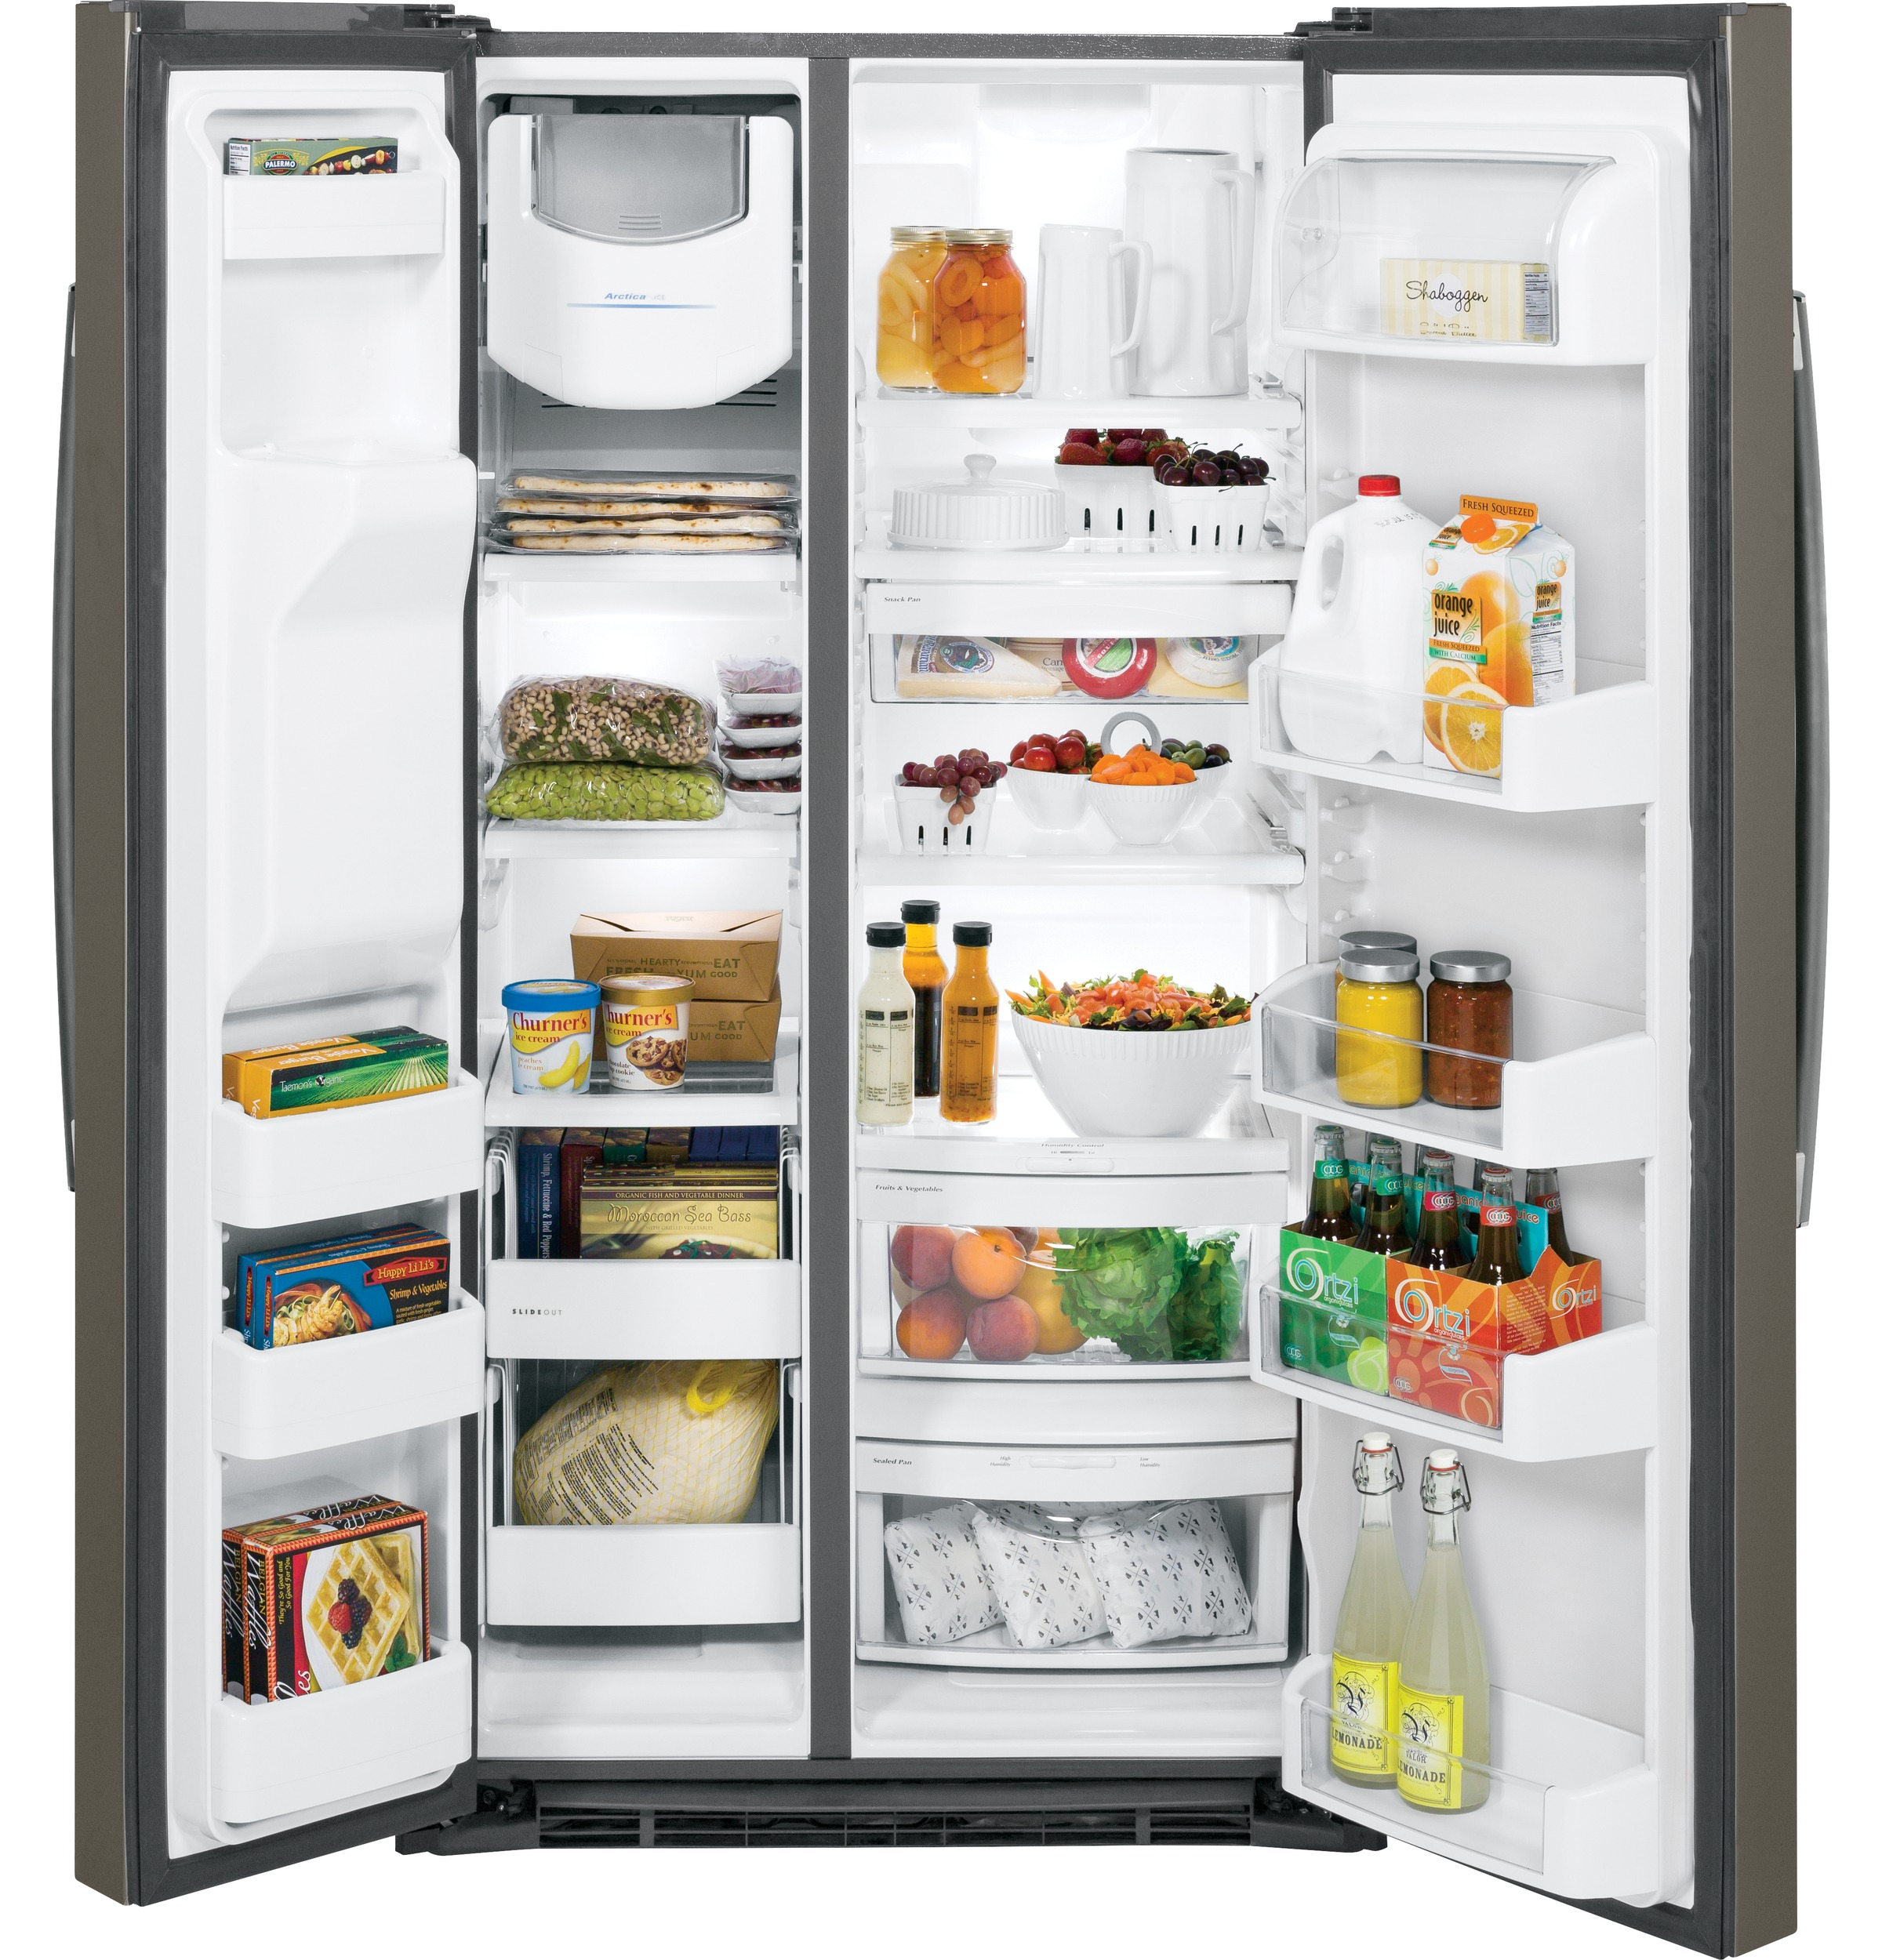 Ge Energy Star 253 Cu Ft Side By Refrigerator Gse25hmhes Sxs Wiring Diagram Product Image